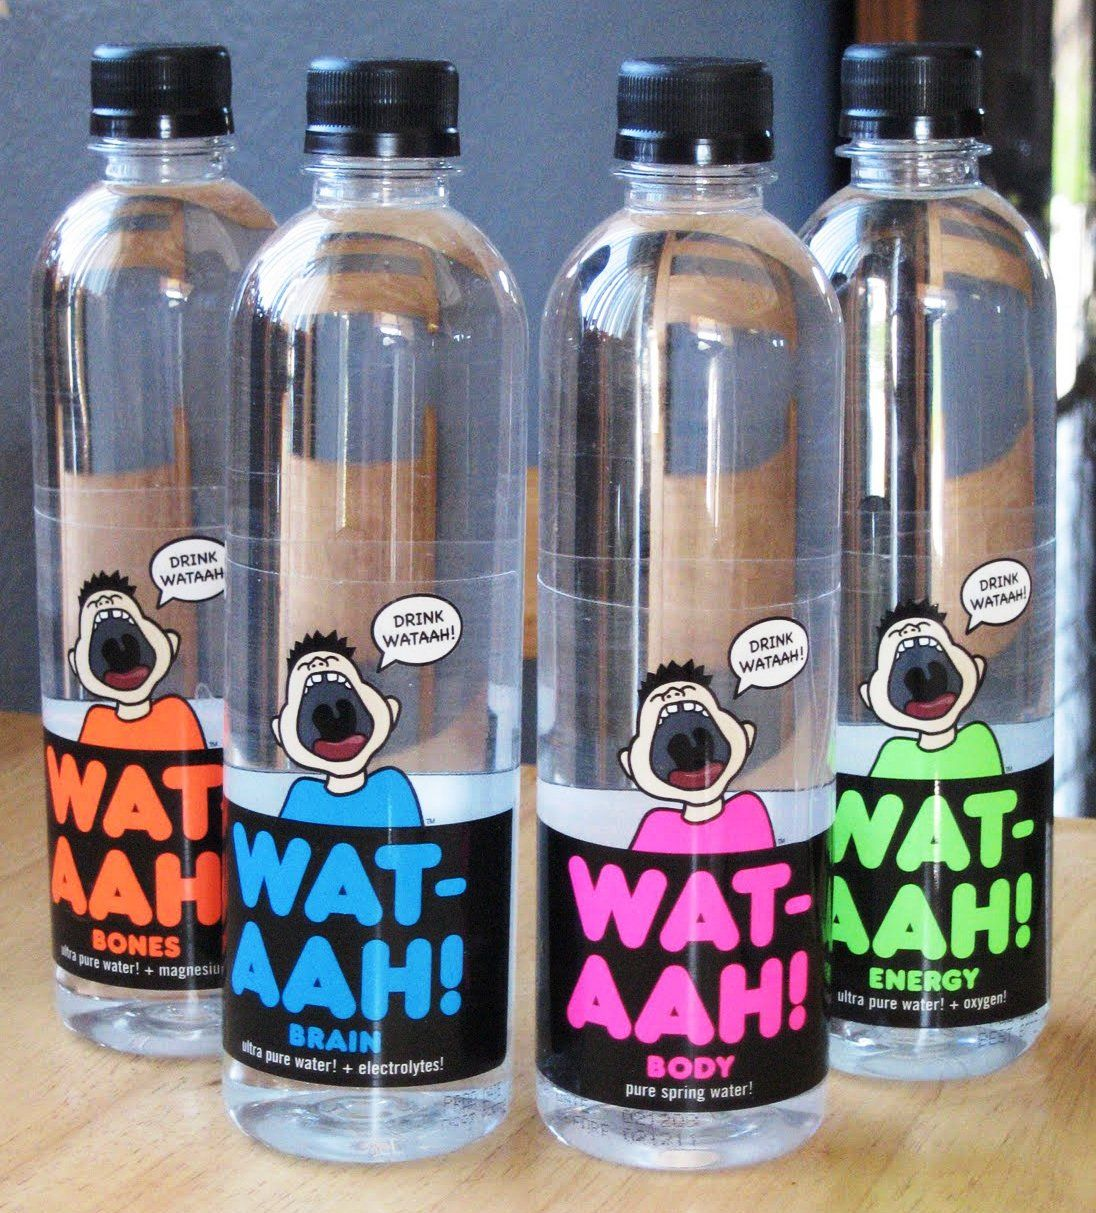 Can Water Really Be Rebranded? // To encourage children to start drinking more H2O and less high-fructose corn syrup, Rose Cameron created WAT-AHH!, a bottled water that's made specifically for kids. #Branding #Design